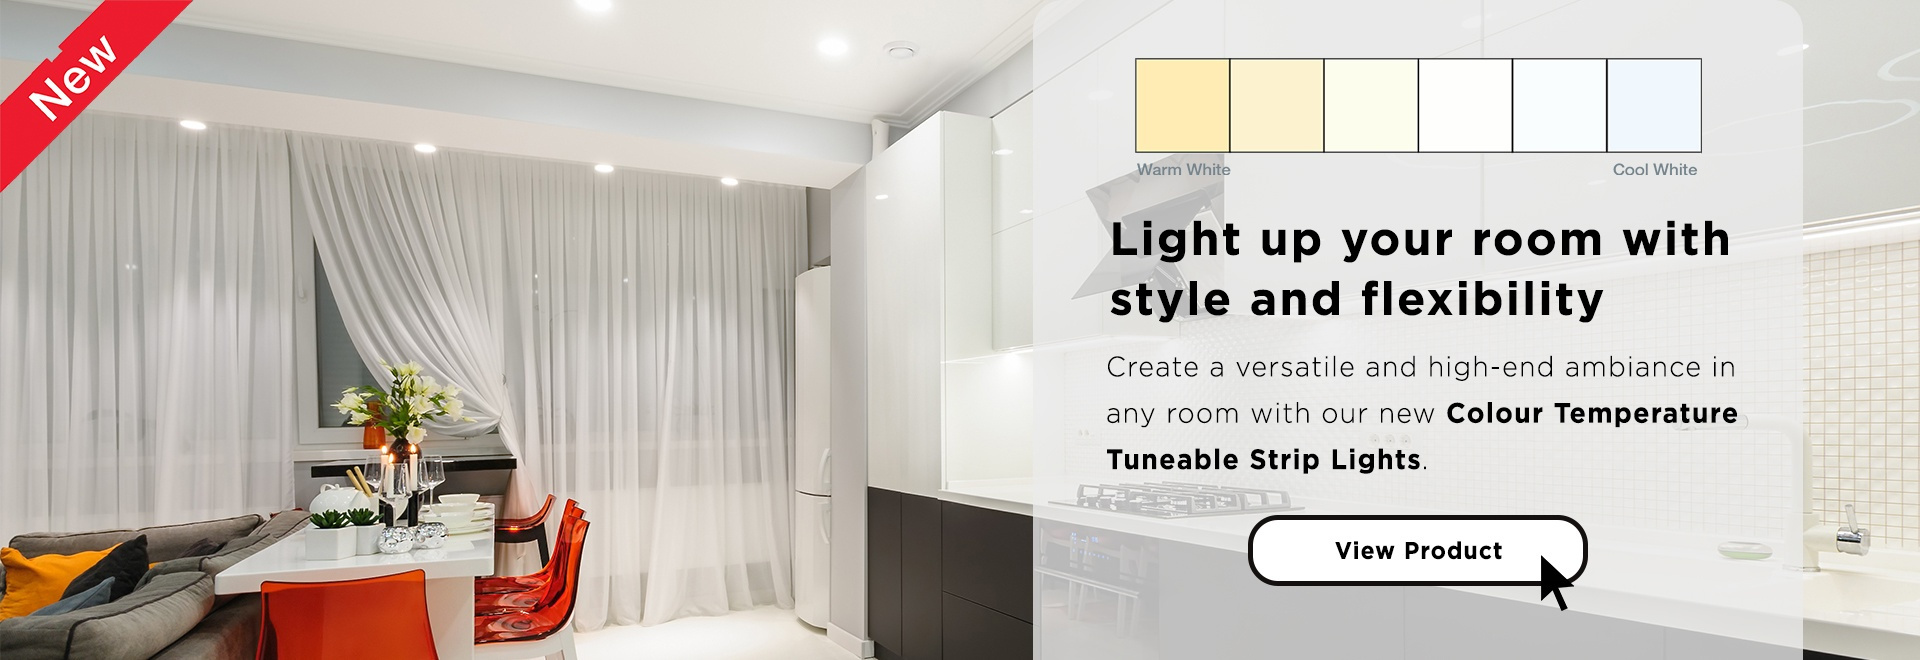 Tuneable Strip Light